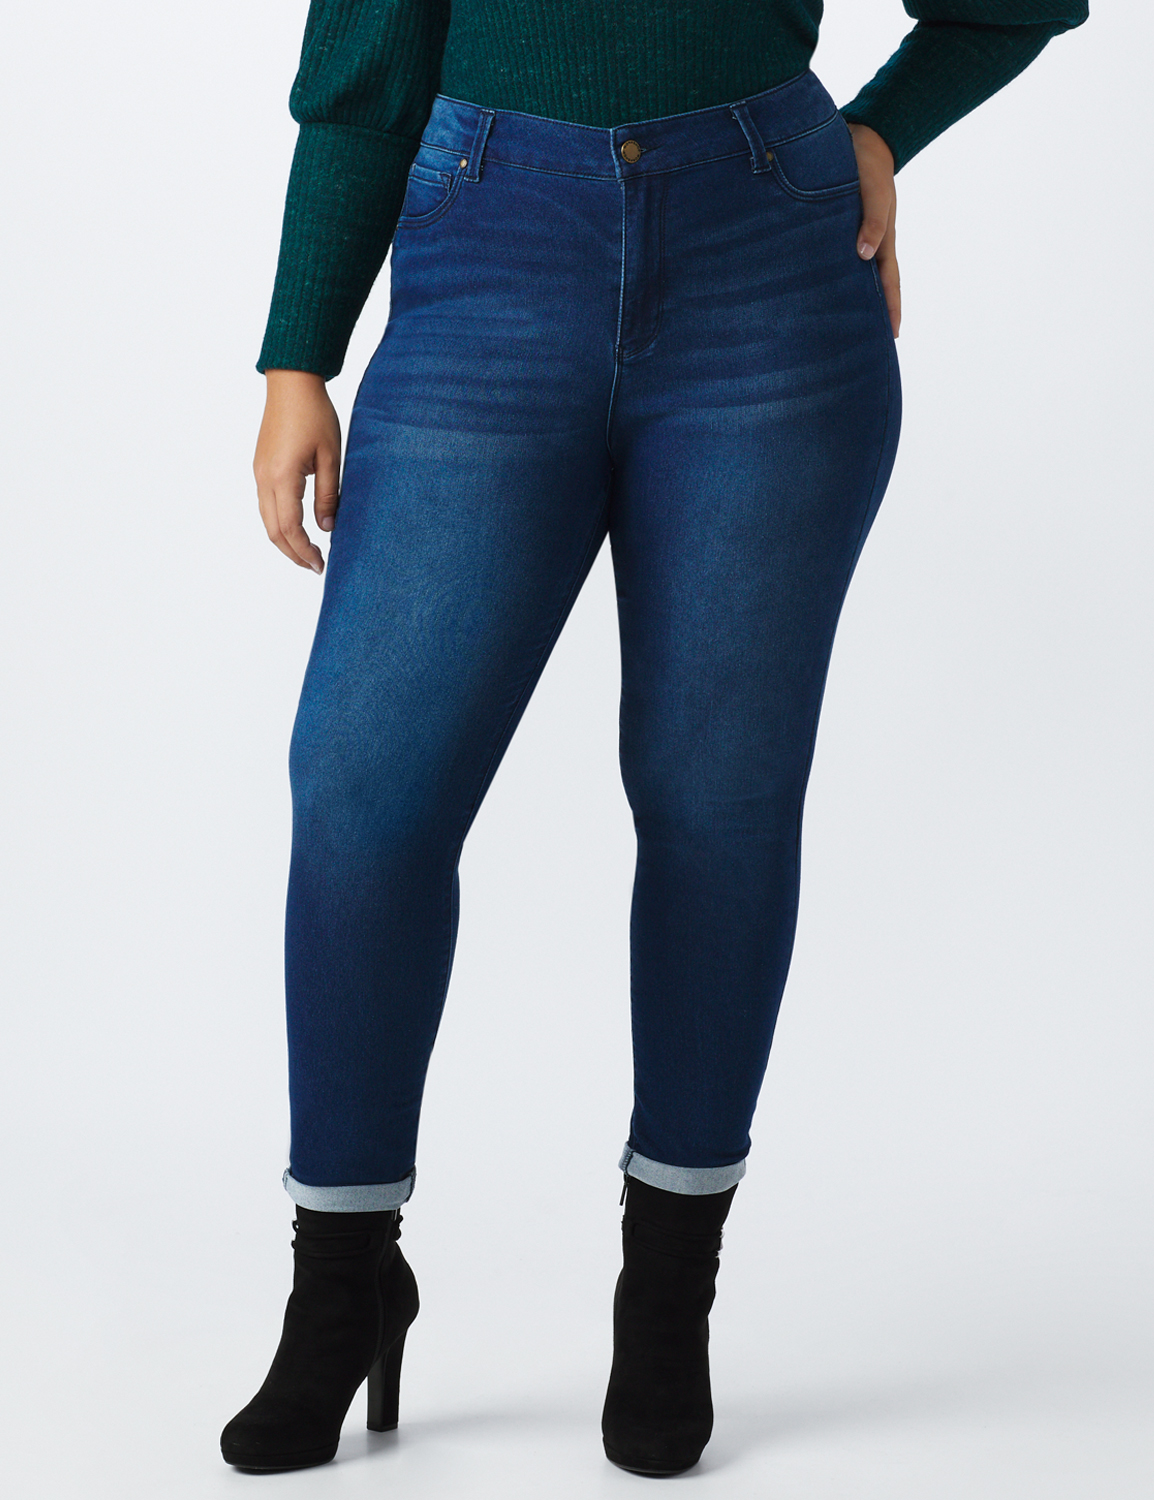 Plus 5 Pocket High Waist Ankle Length Roll Up Jean - Medium Wash - Front